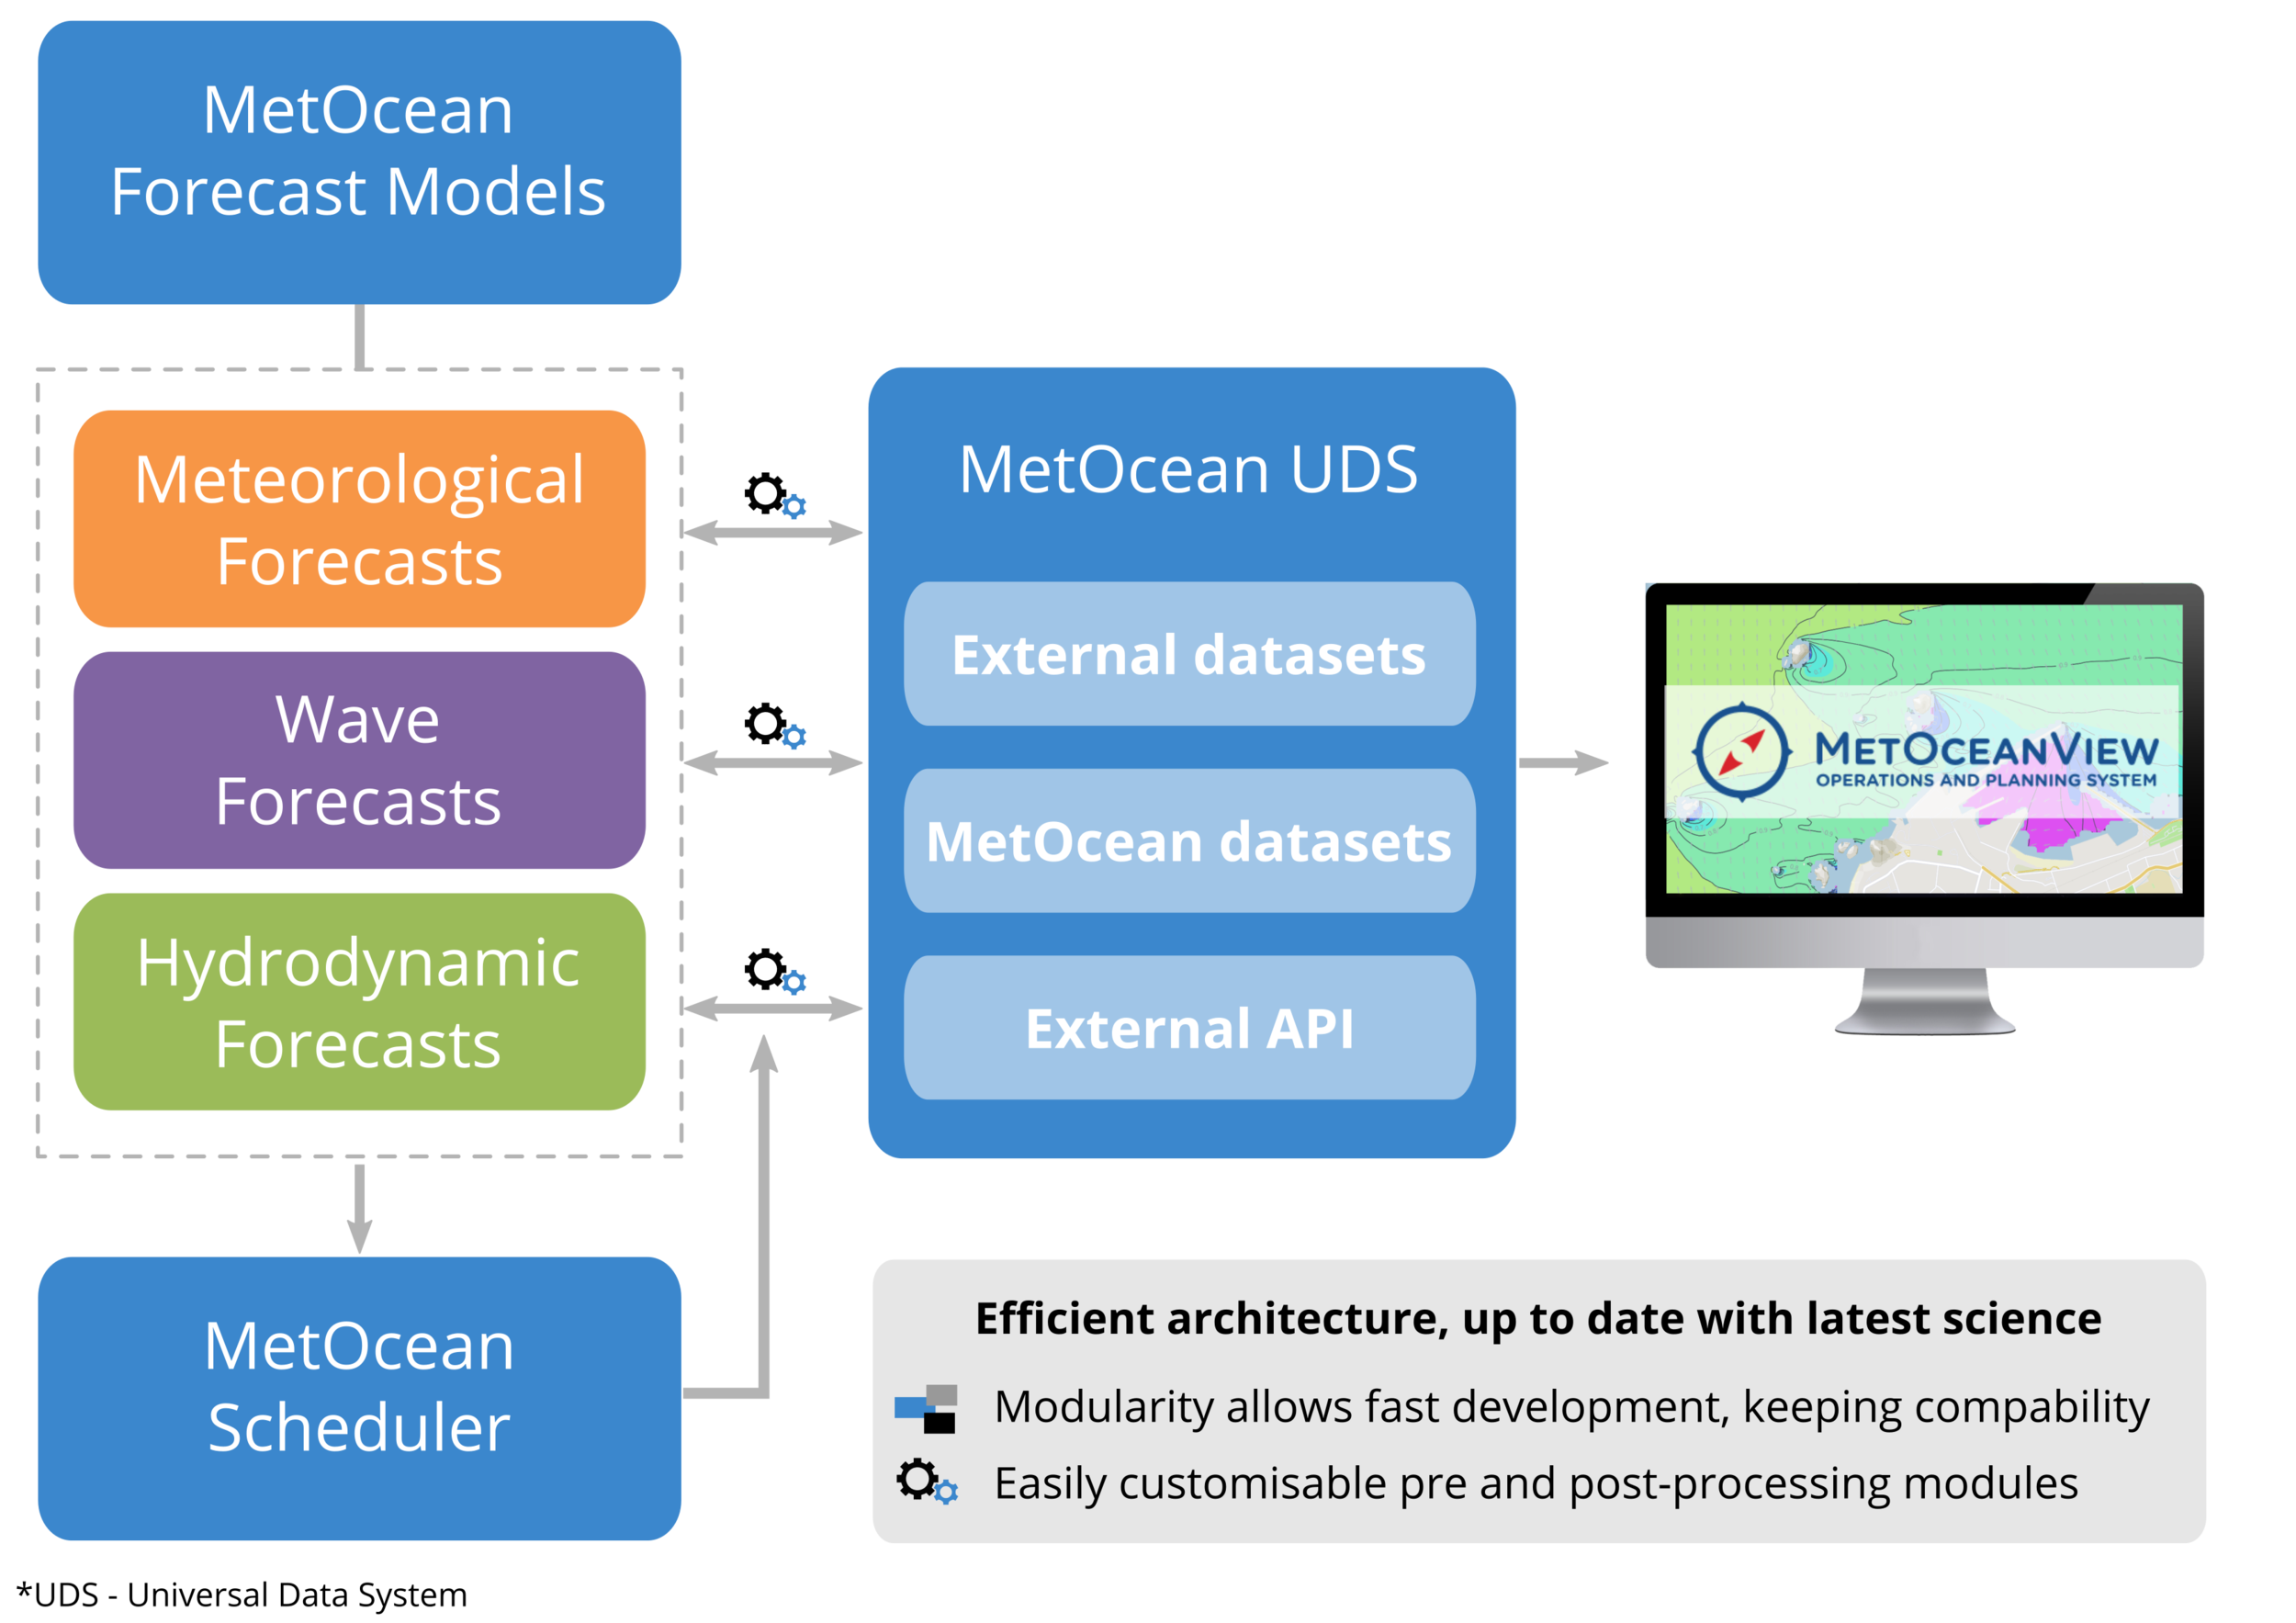 General architecture concept of MetOcean's operational system.